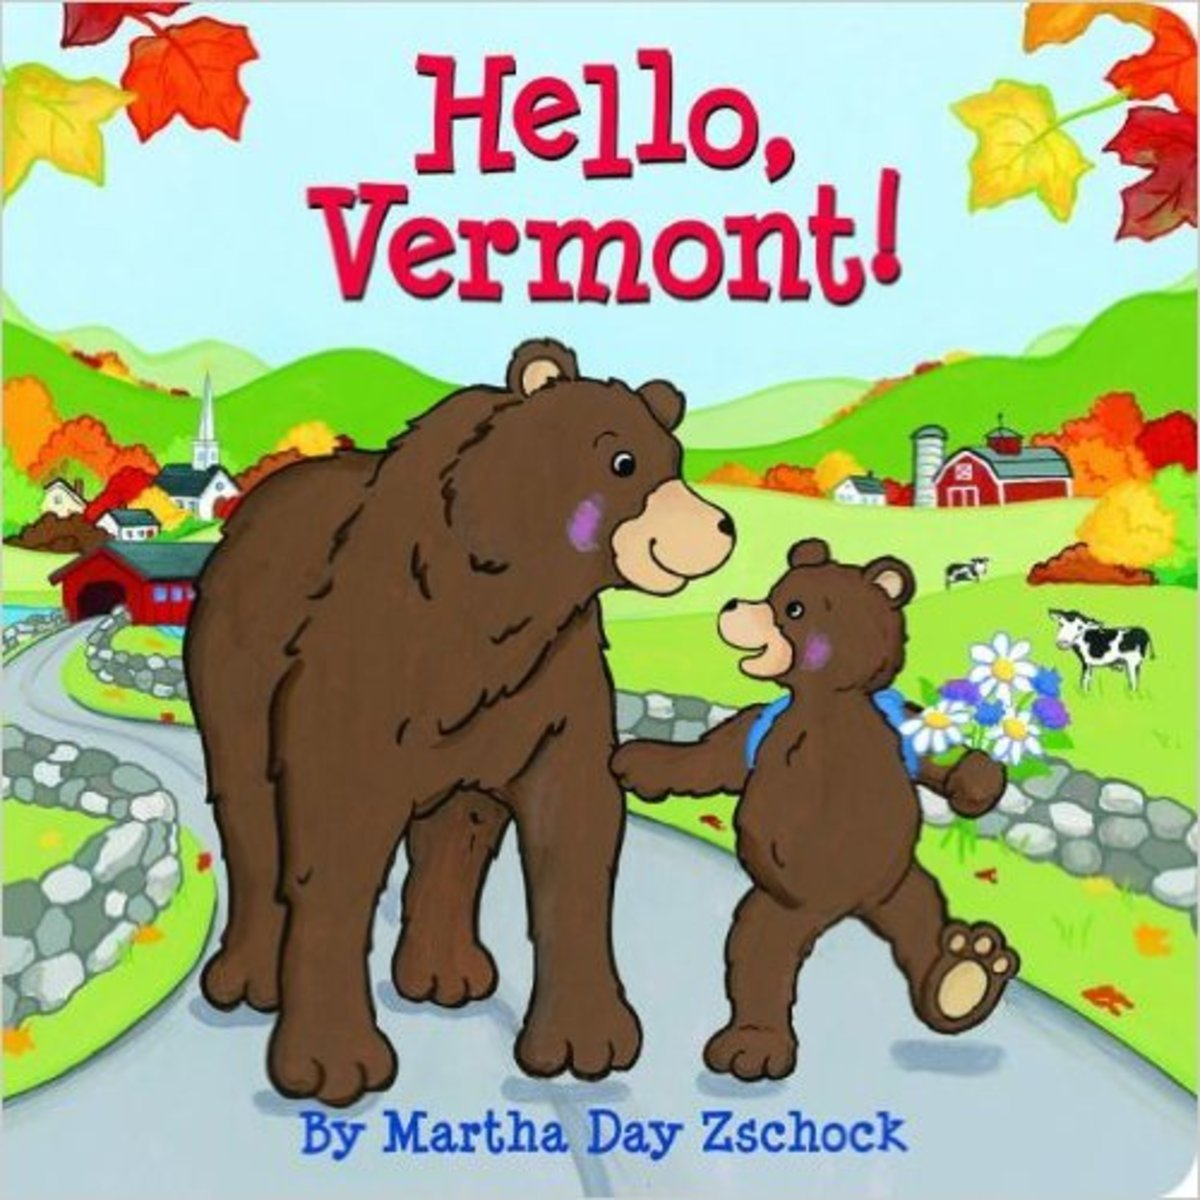 Hello Vermont! board book by Martha Zschock - Images are from amazon.com